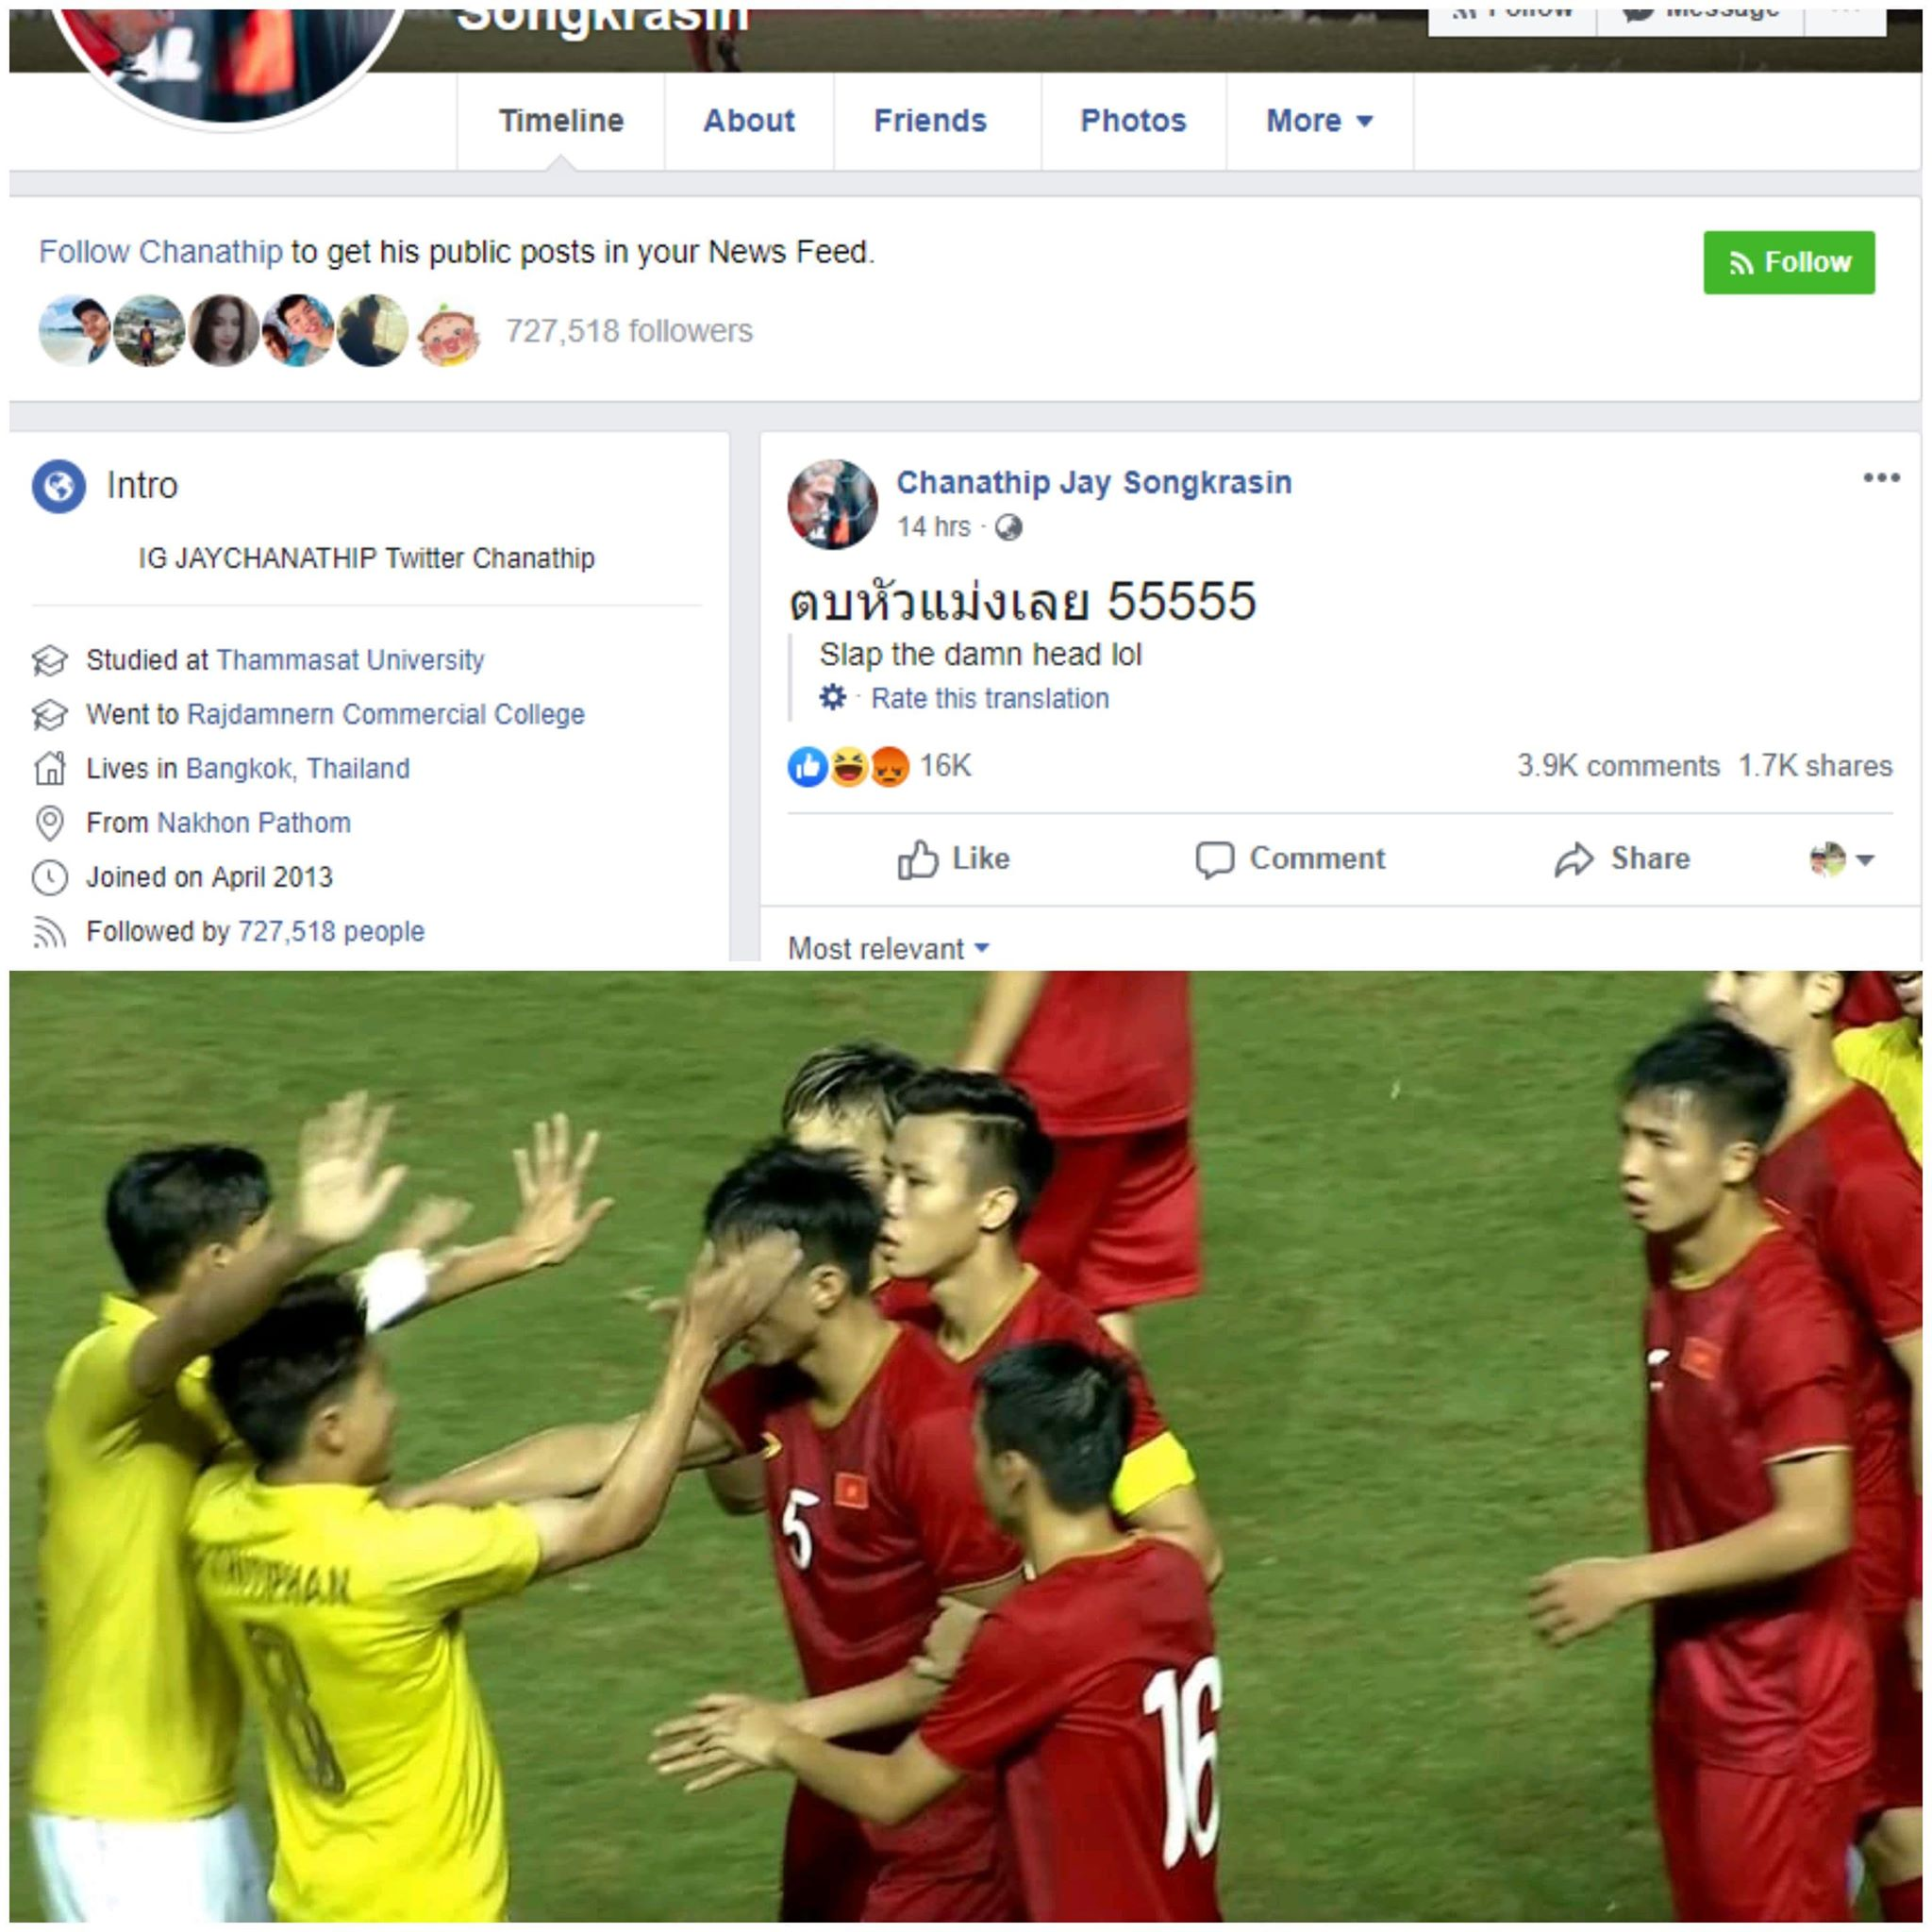 This combined photo shows the controversial post on Chanathip Songkrasin Facebook and the situation when Vietnamese and Thai players got into a quarrel during their King's Cup game on June 5, 2019.